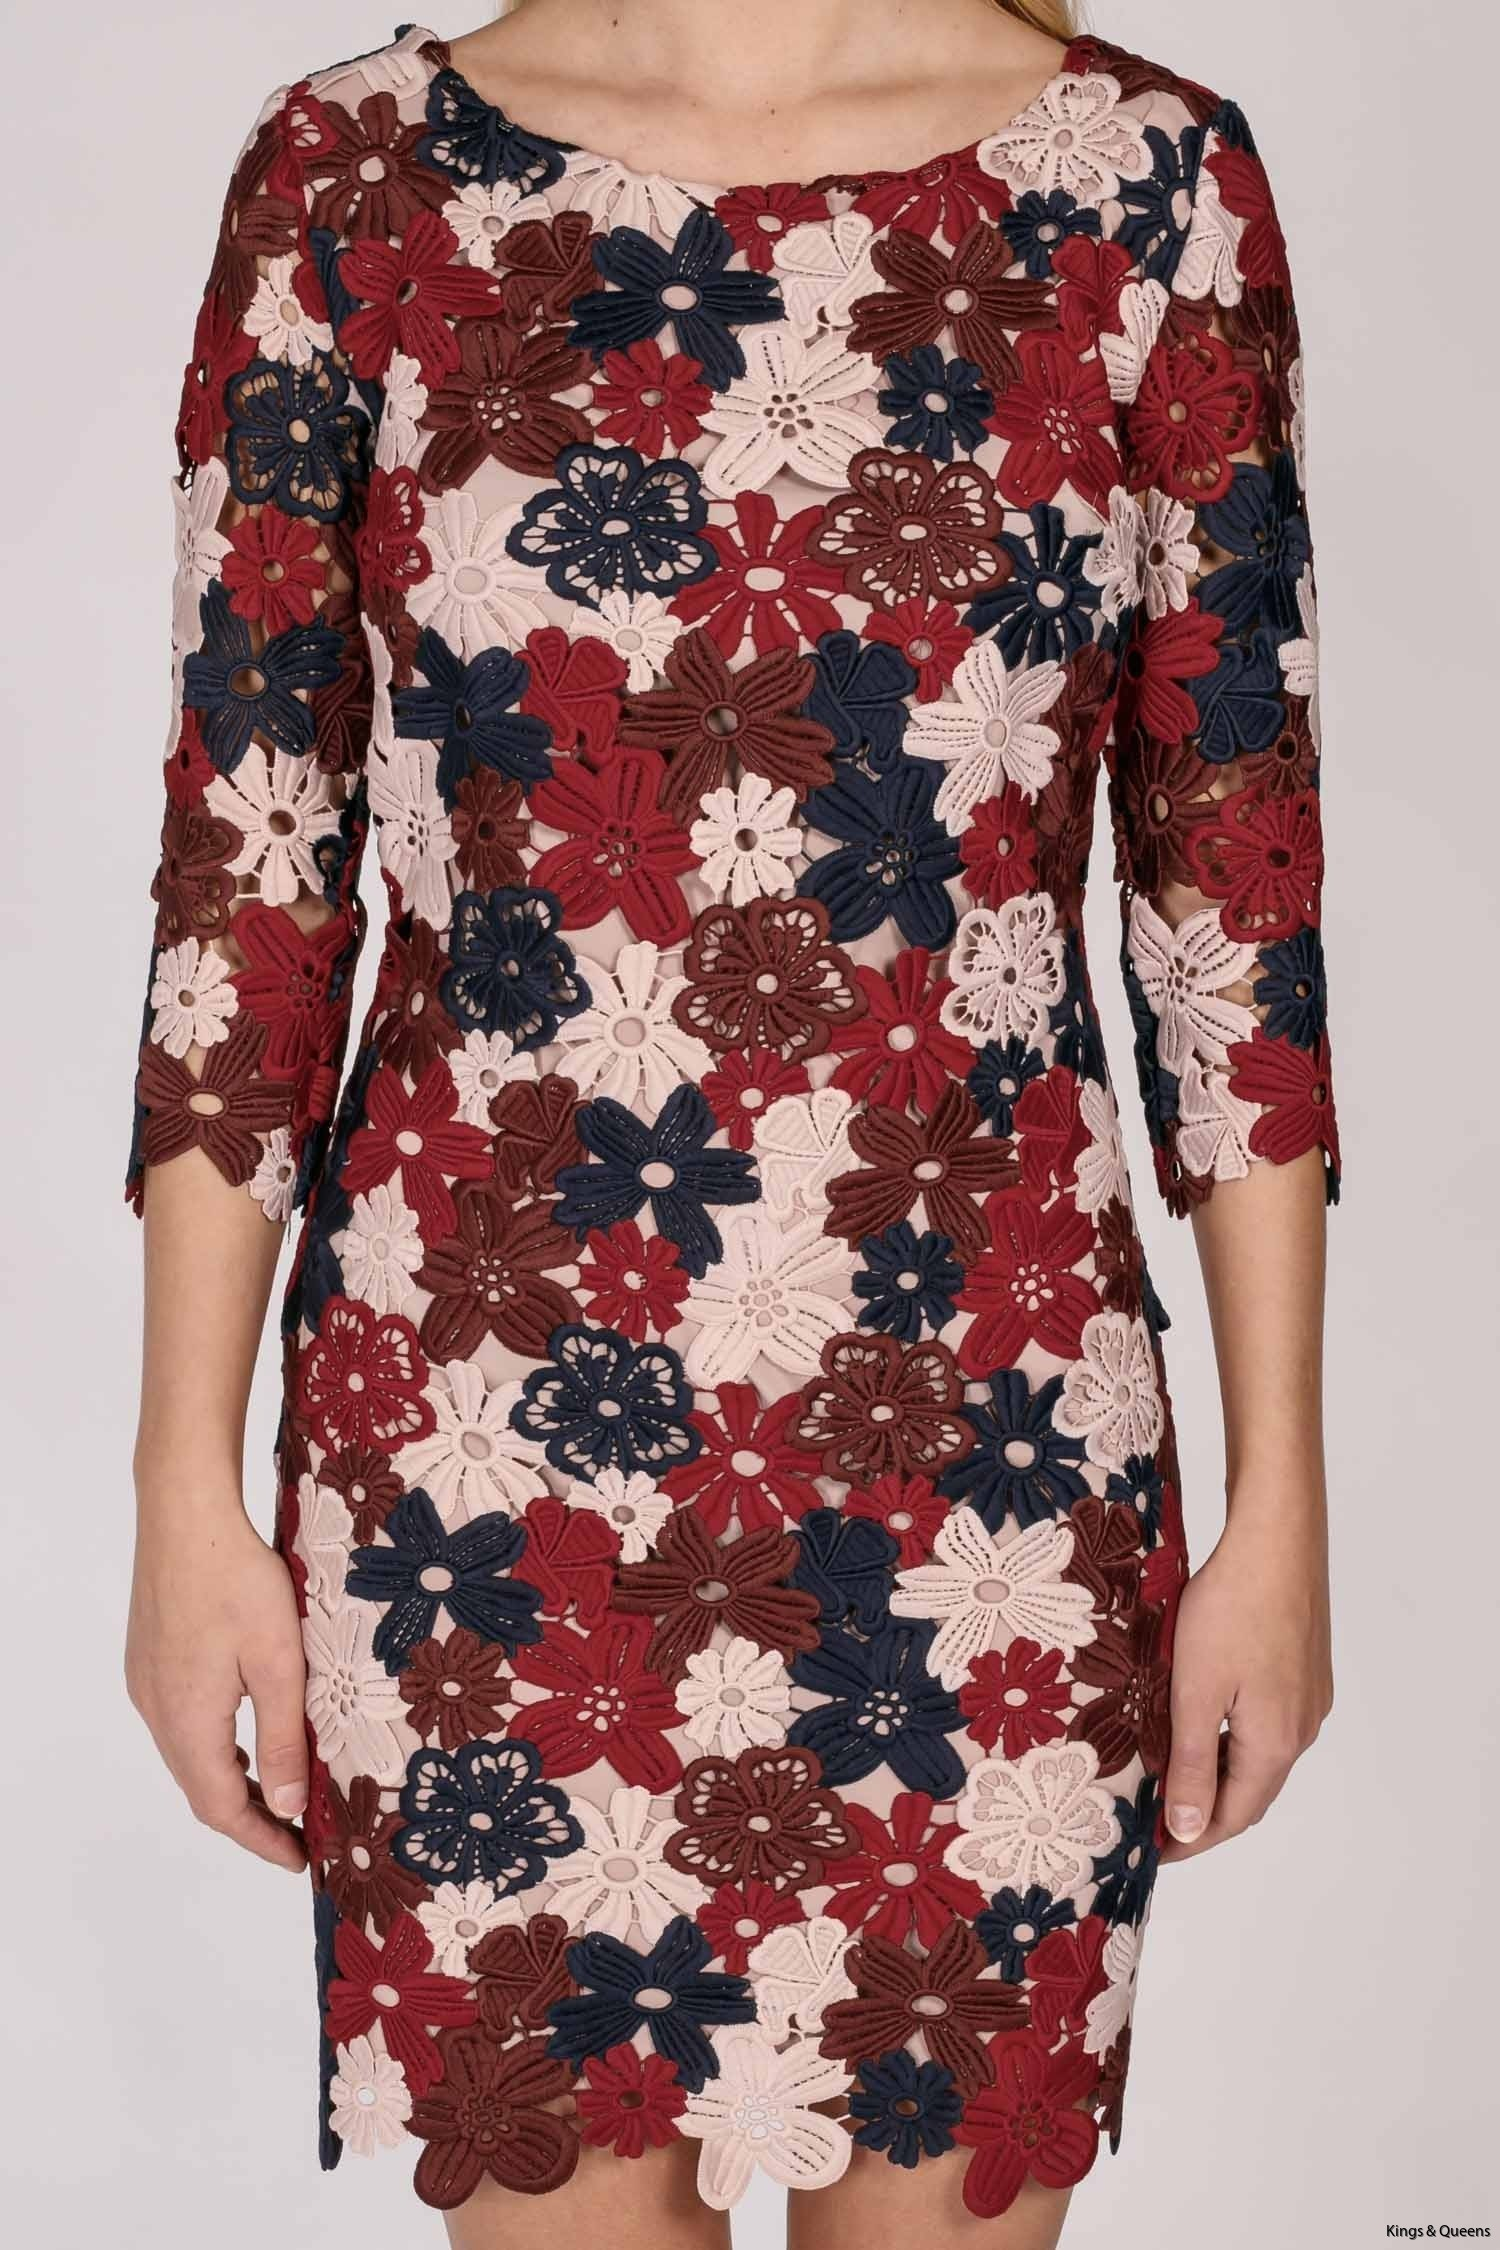 pw6425-lace_flower_dress_9_of_10_